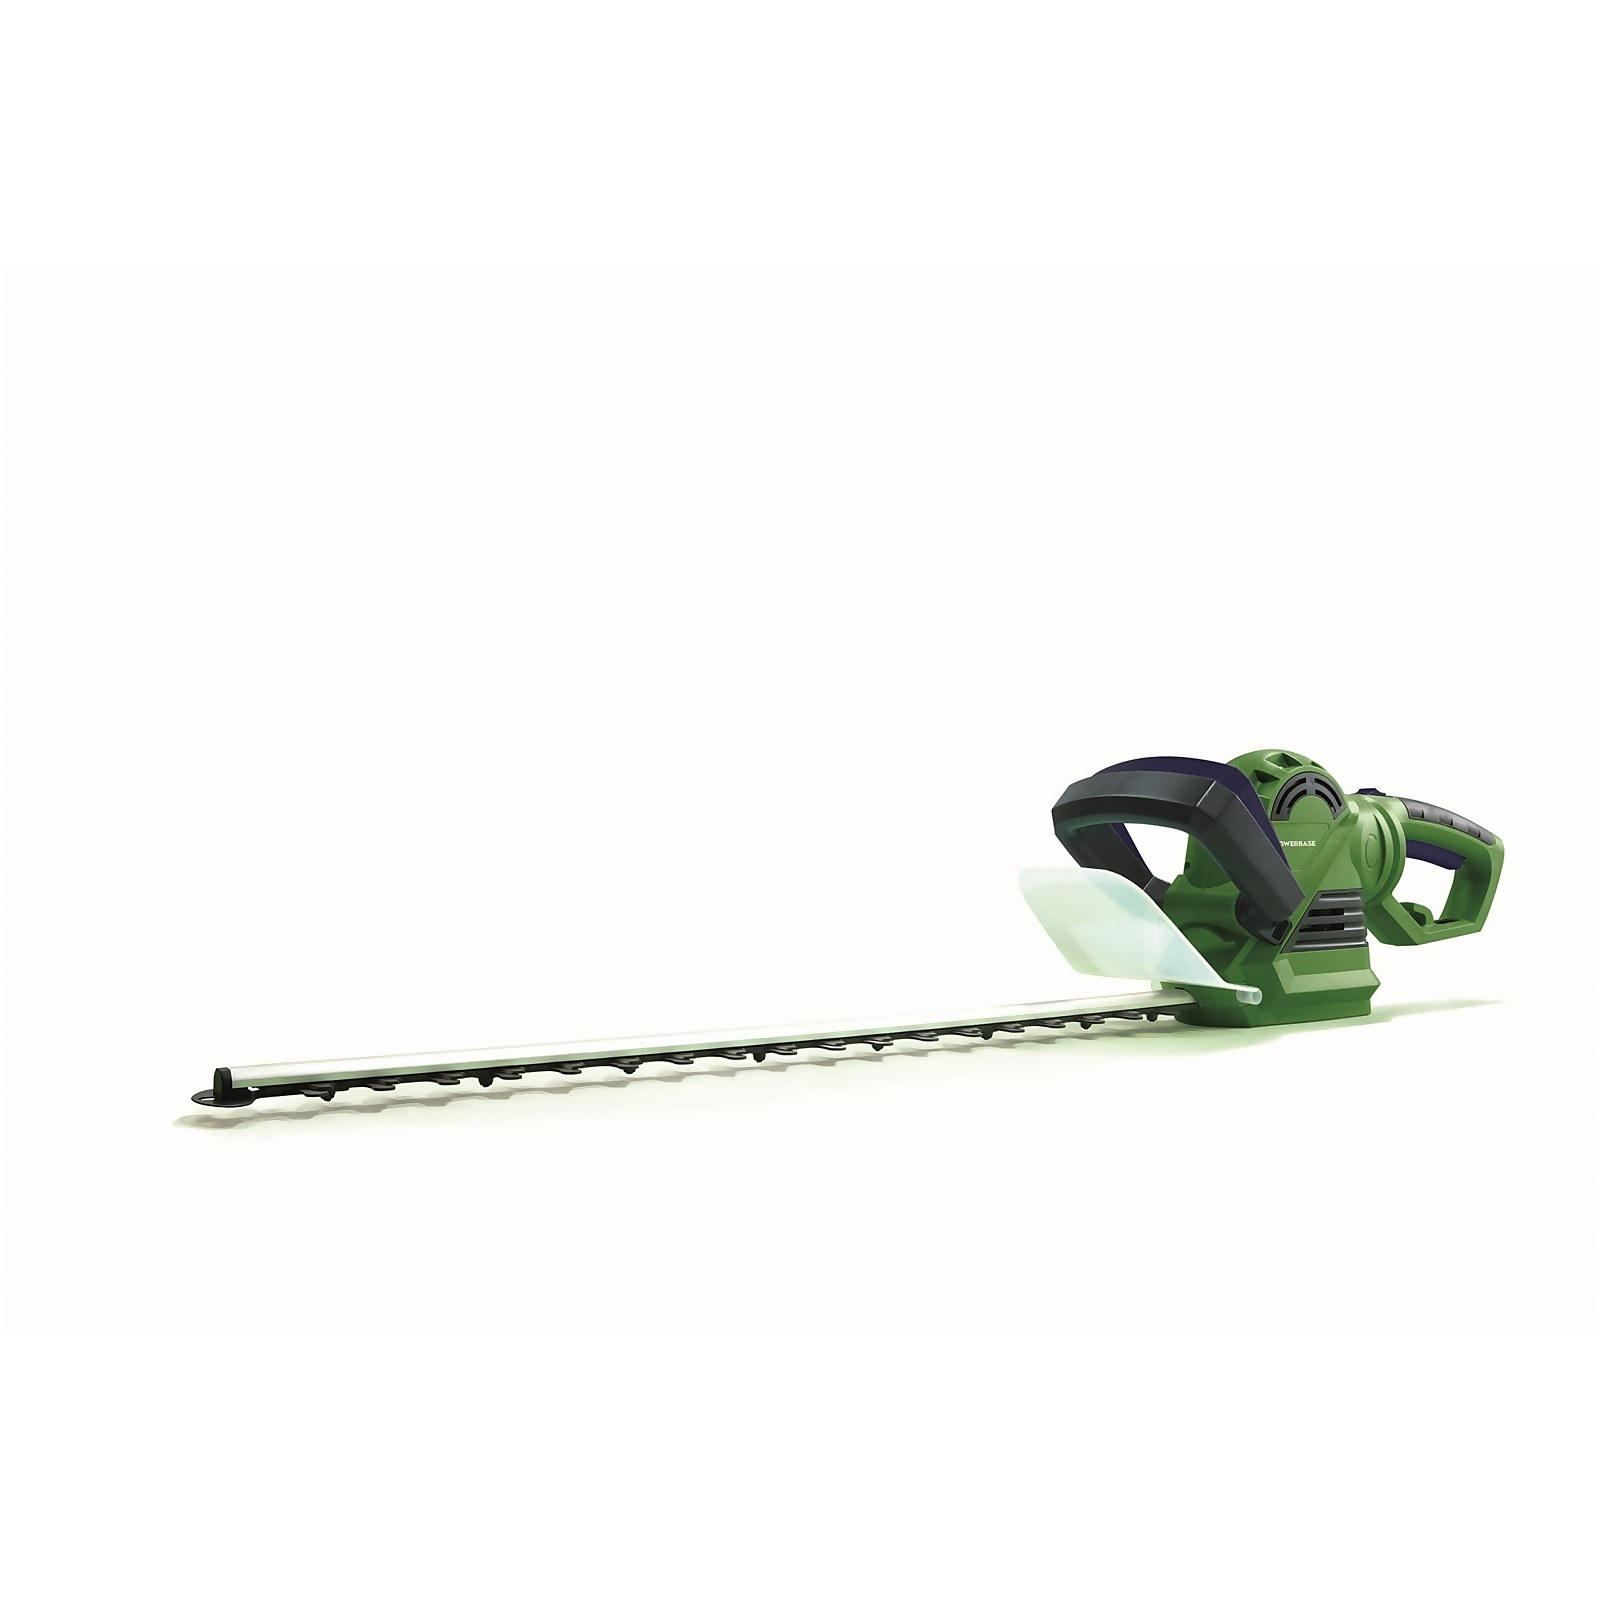 Powerbase 710W Electric Hedge Trimmer 66cm